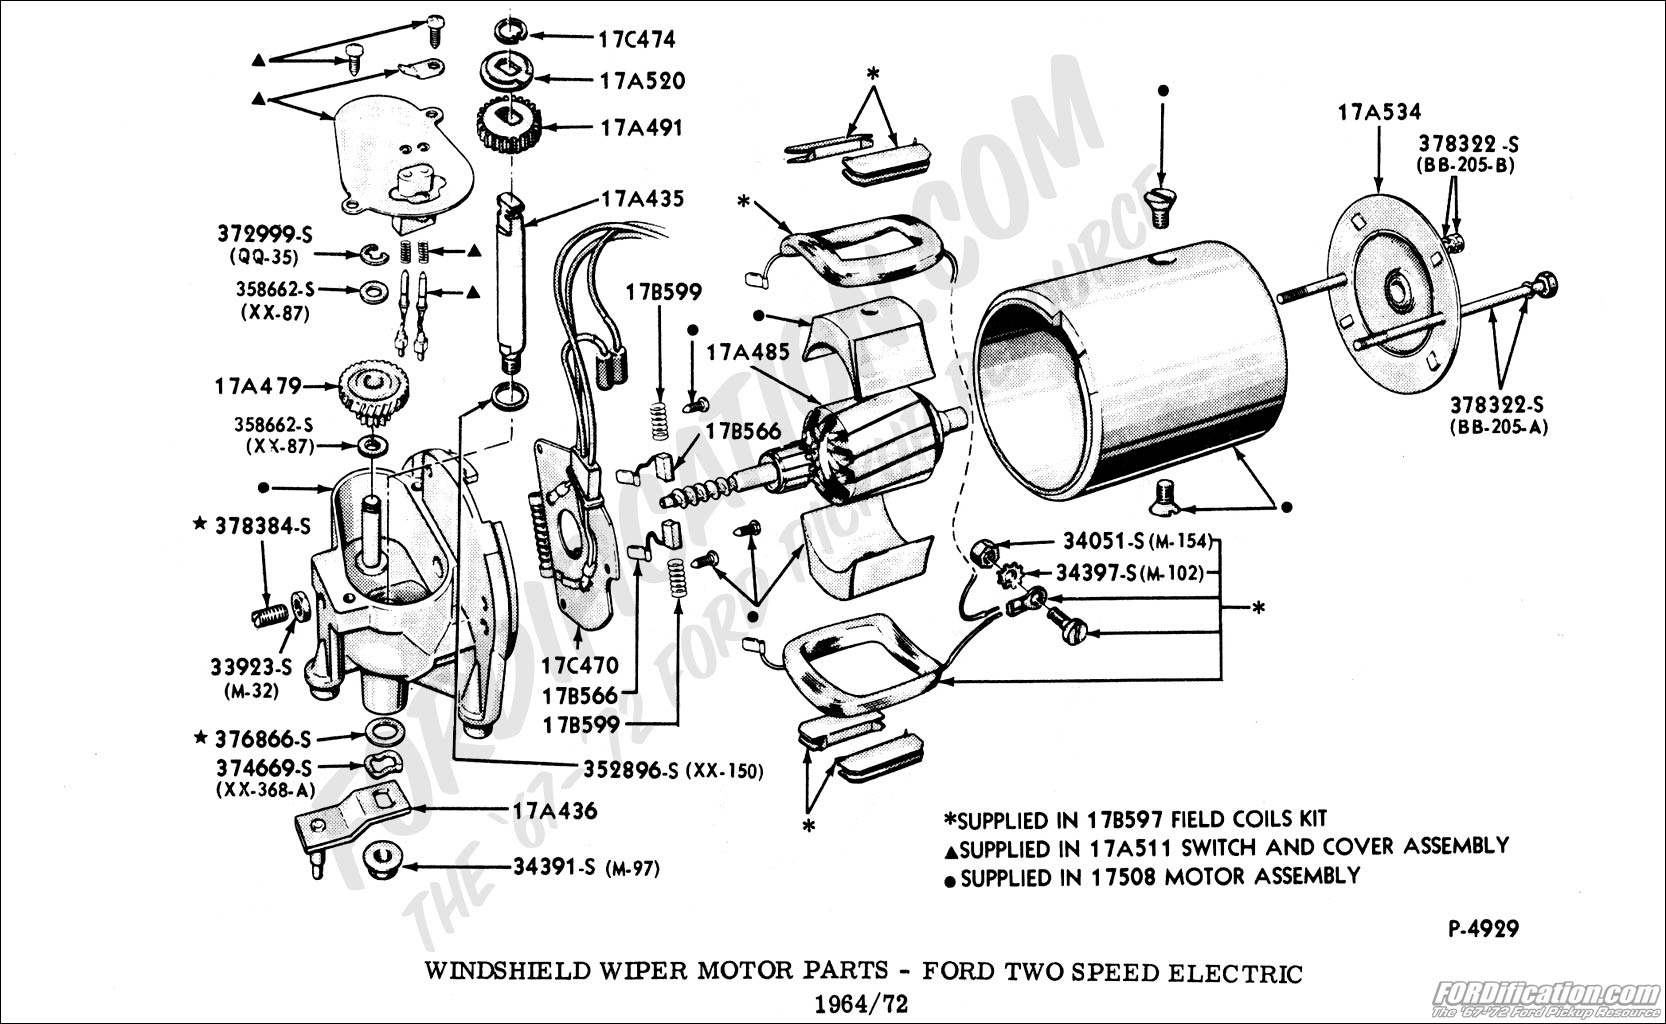 headlamp wiring diagram with Schematics I on 1986 Nissan 300zx Wiring Harness also Yamaha Ybr 125 Electrical System Wiring together with T14843434 Witch relay works headlights 98 ford as well Schematics i together with 7 Pin Trailer Harness.